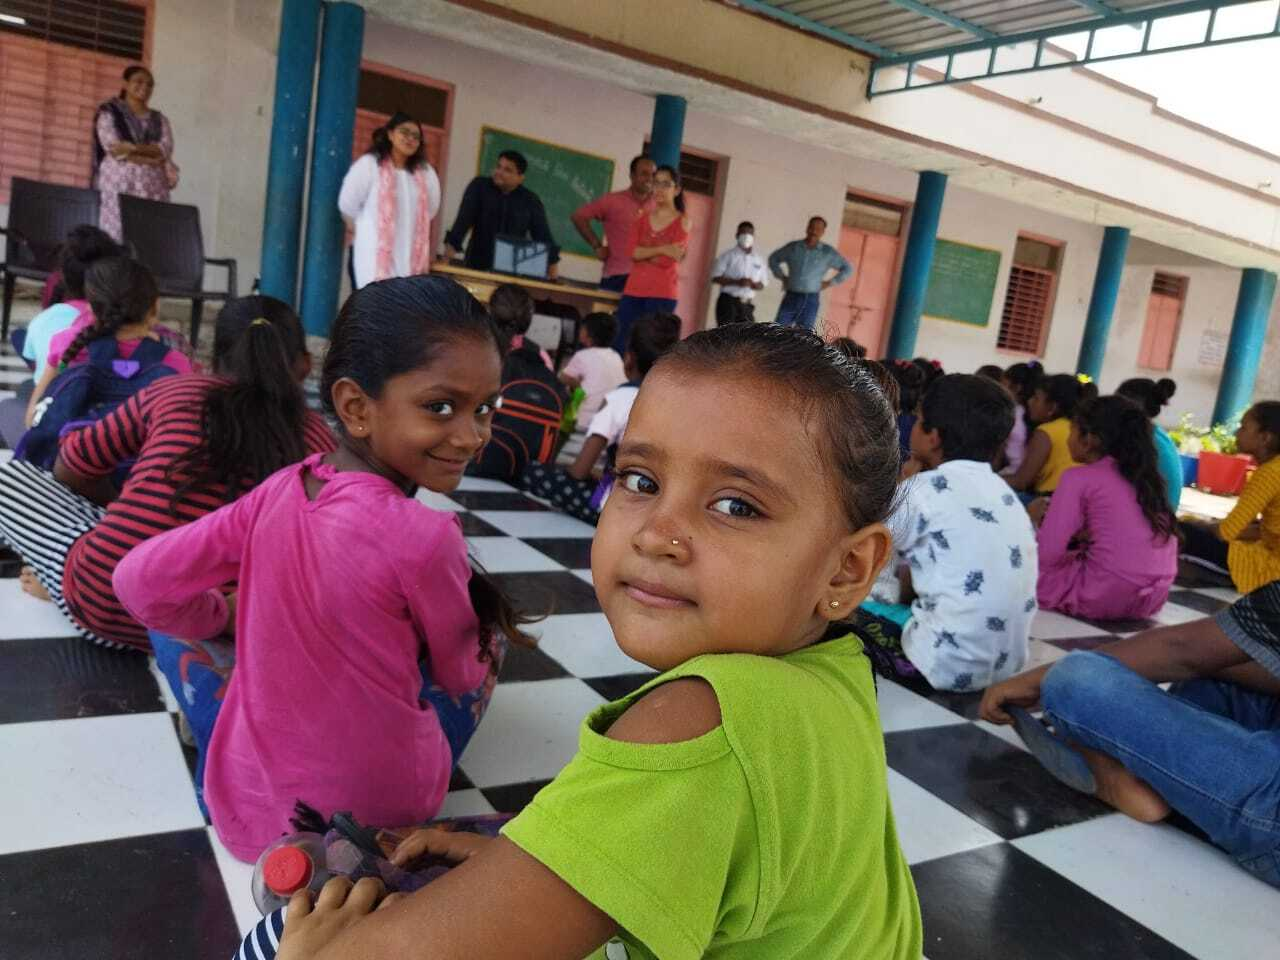 The Monkey That Guides Children in India To Learn English Digital Initiative & Collaboration of NGO Go Dharmic & Klik2learn -A Literacy Learning Program To Bridge Learning Loss/Gap